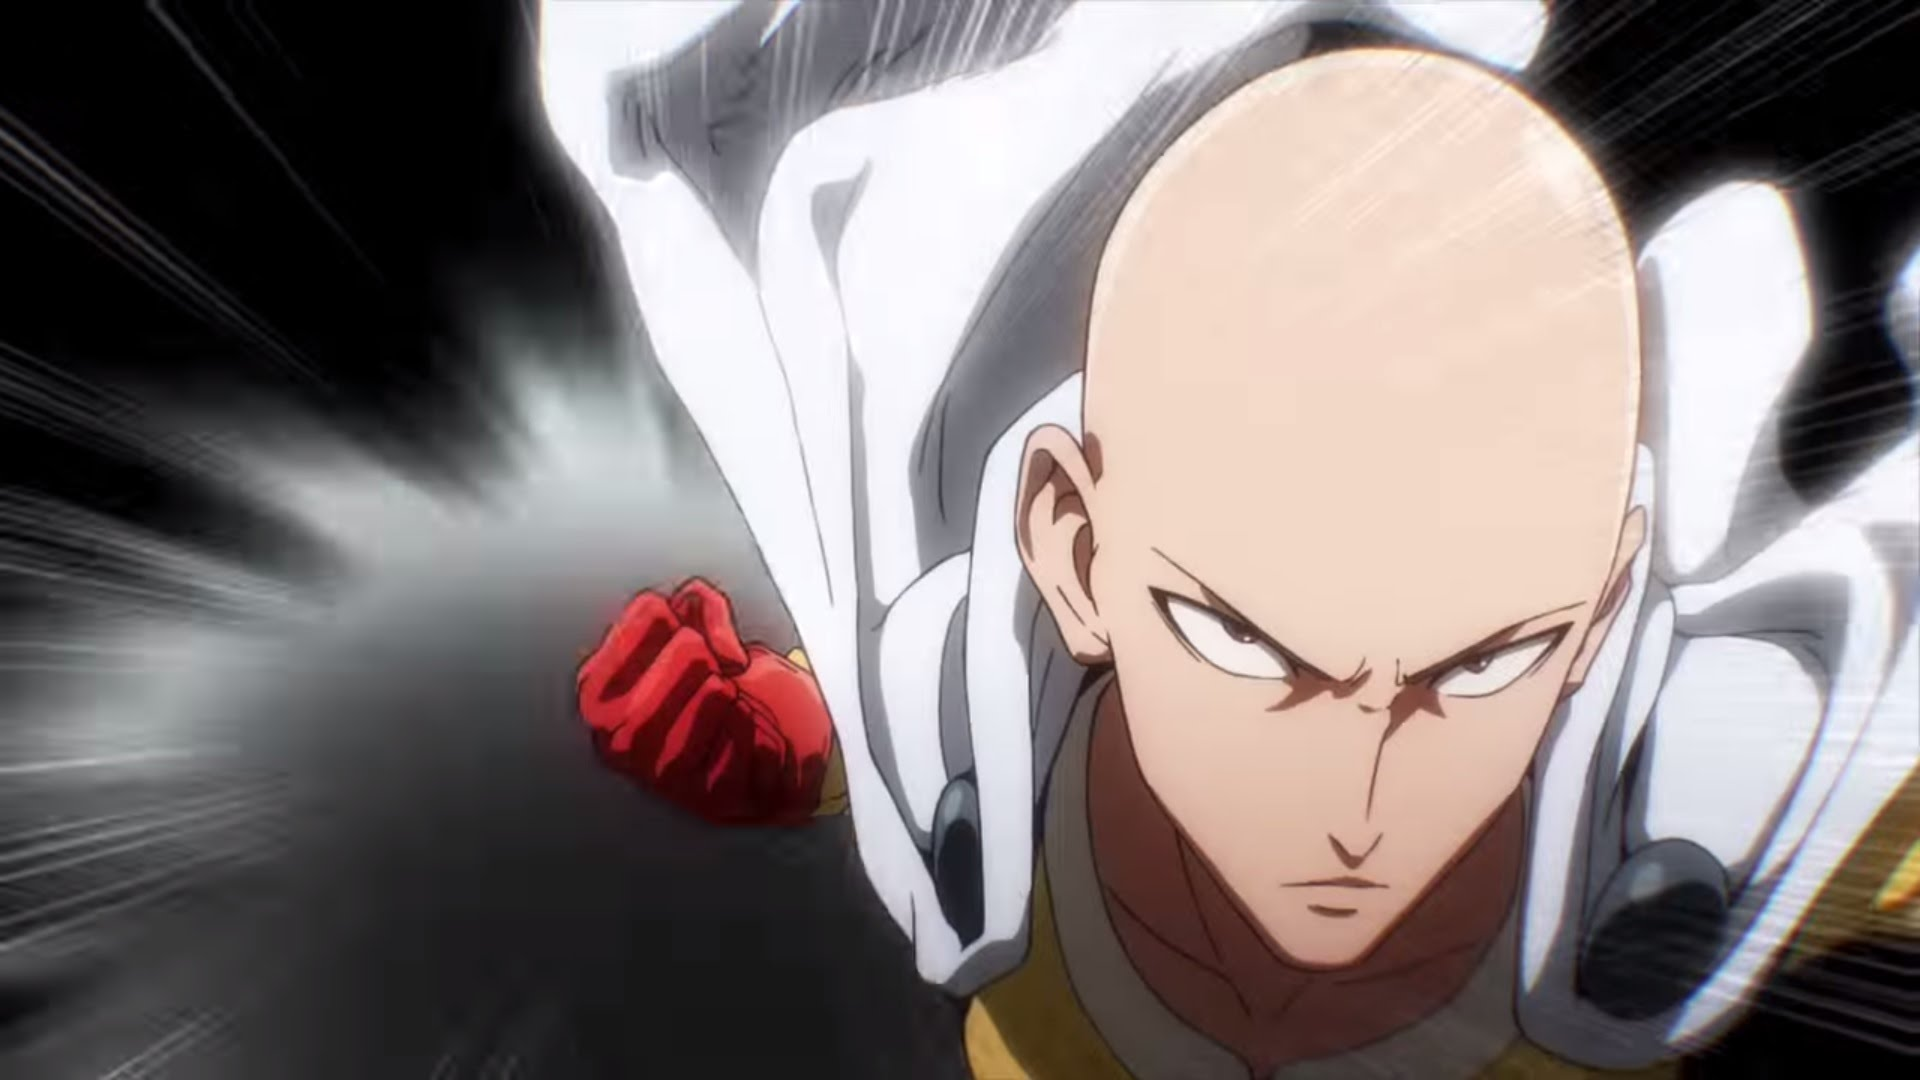 Hd wallpaper one punch man - One Punch Man Ready For Punch Wallpaper Hd